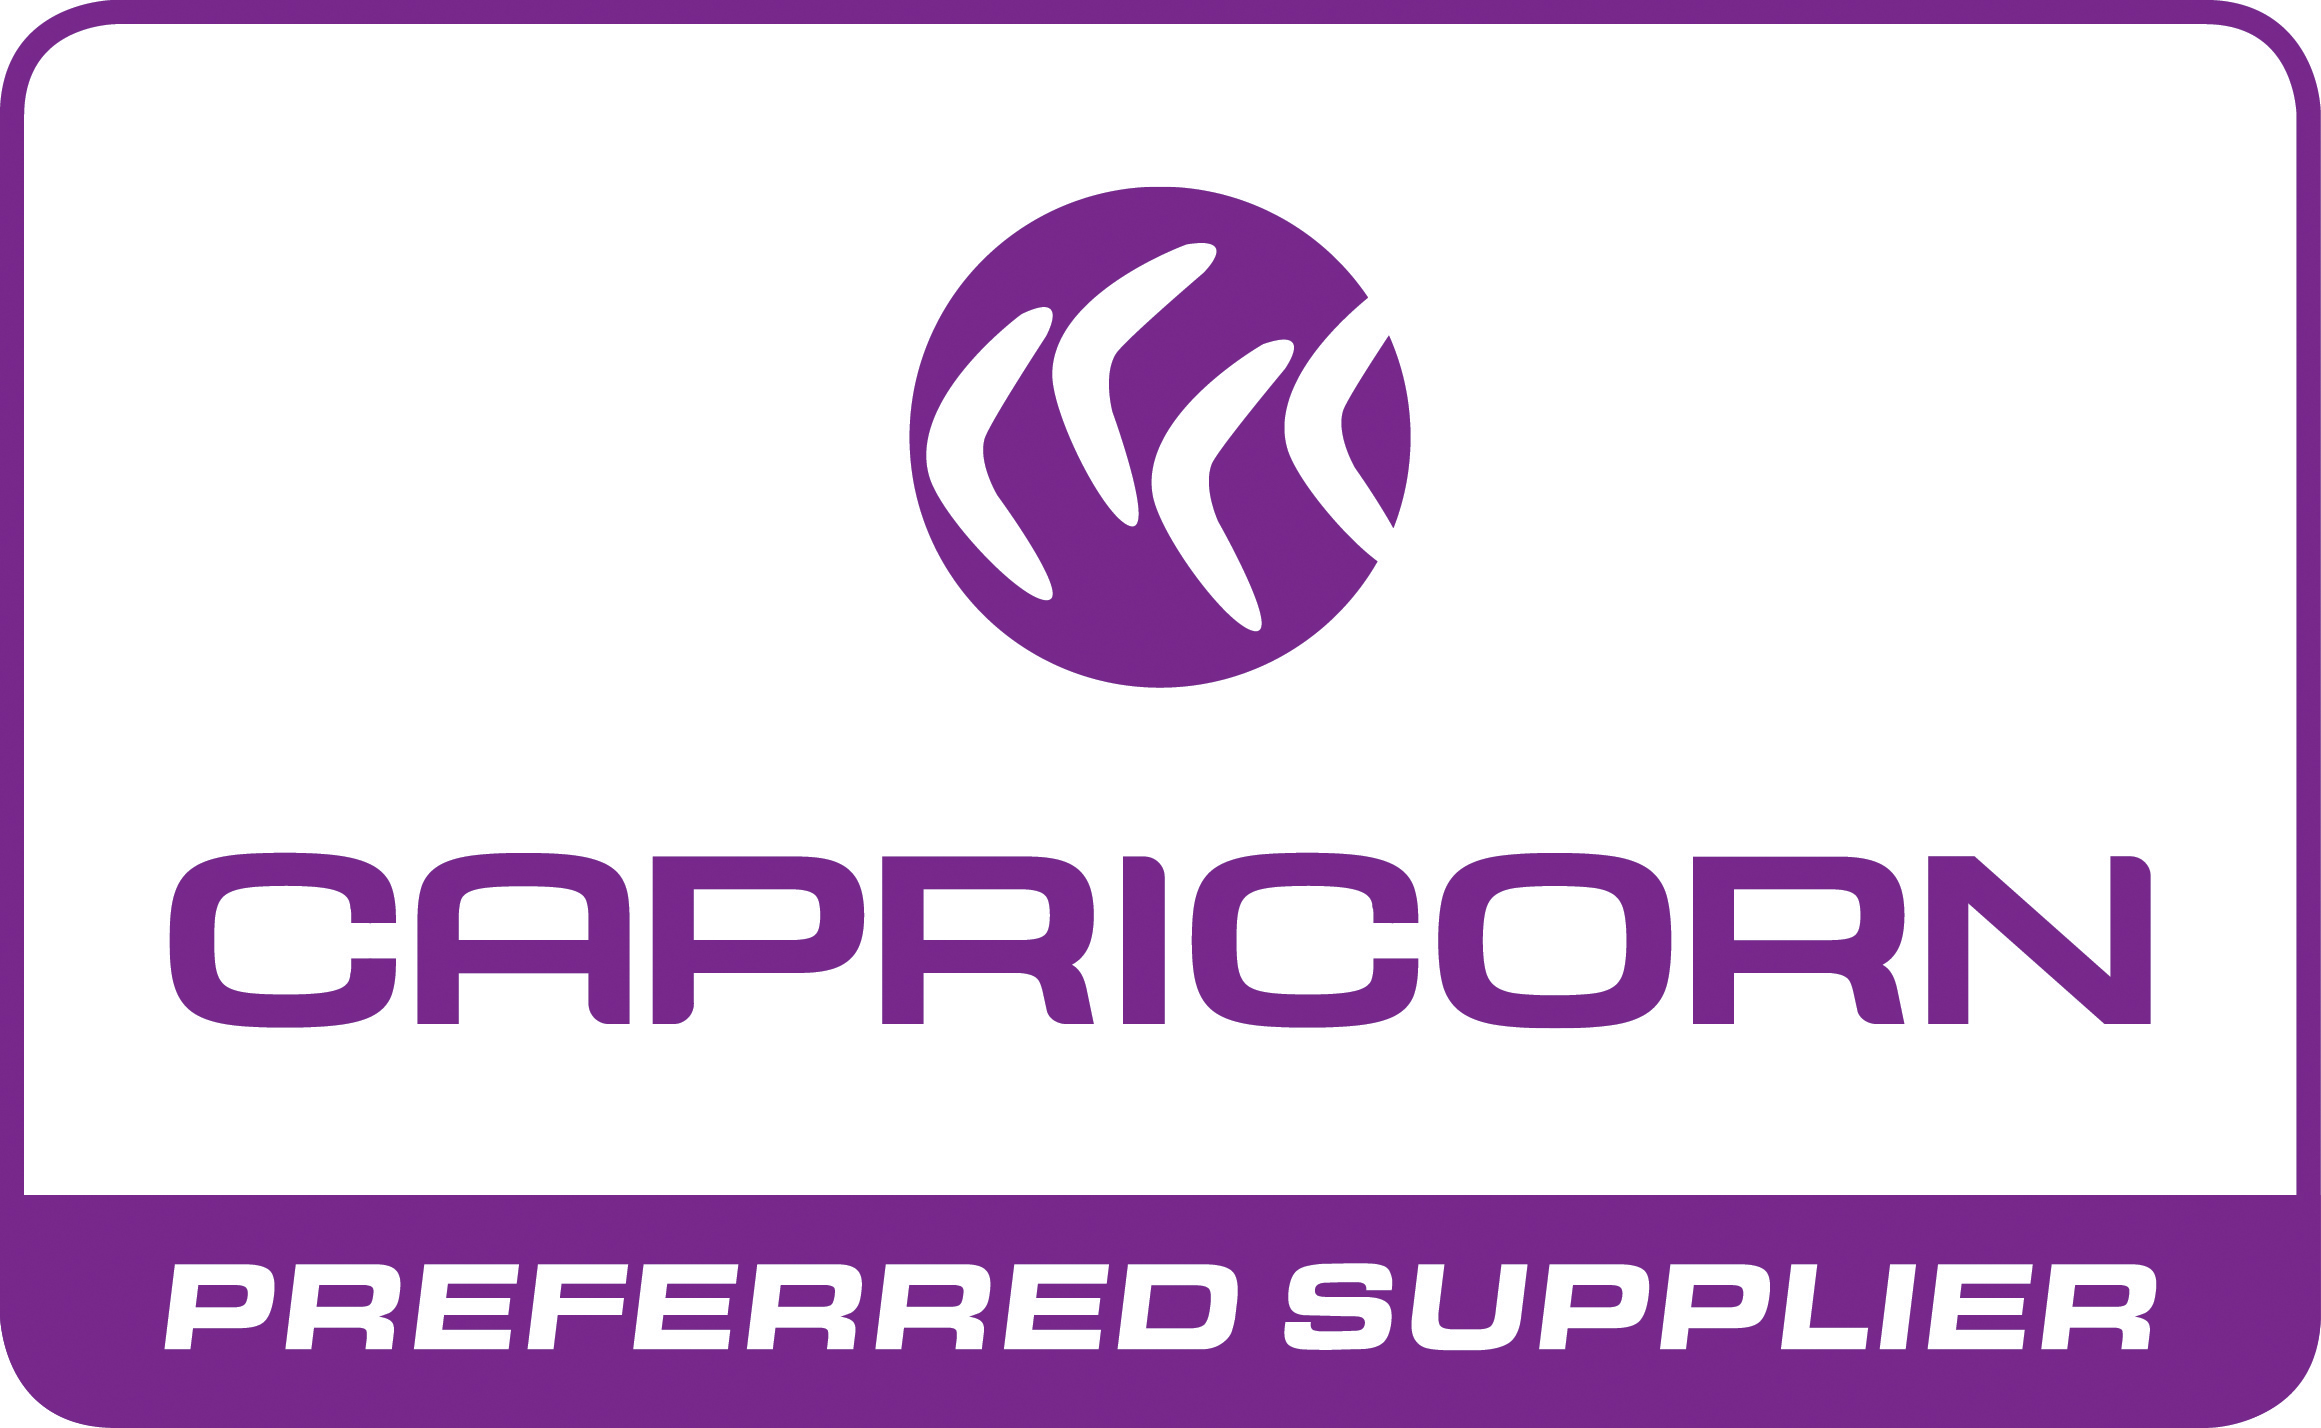 preferred-supplier-logo-capricorn-no1.jpg